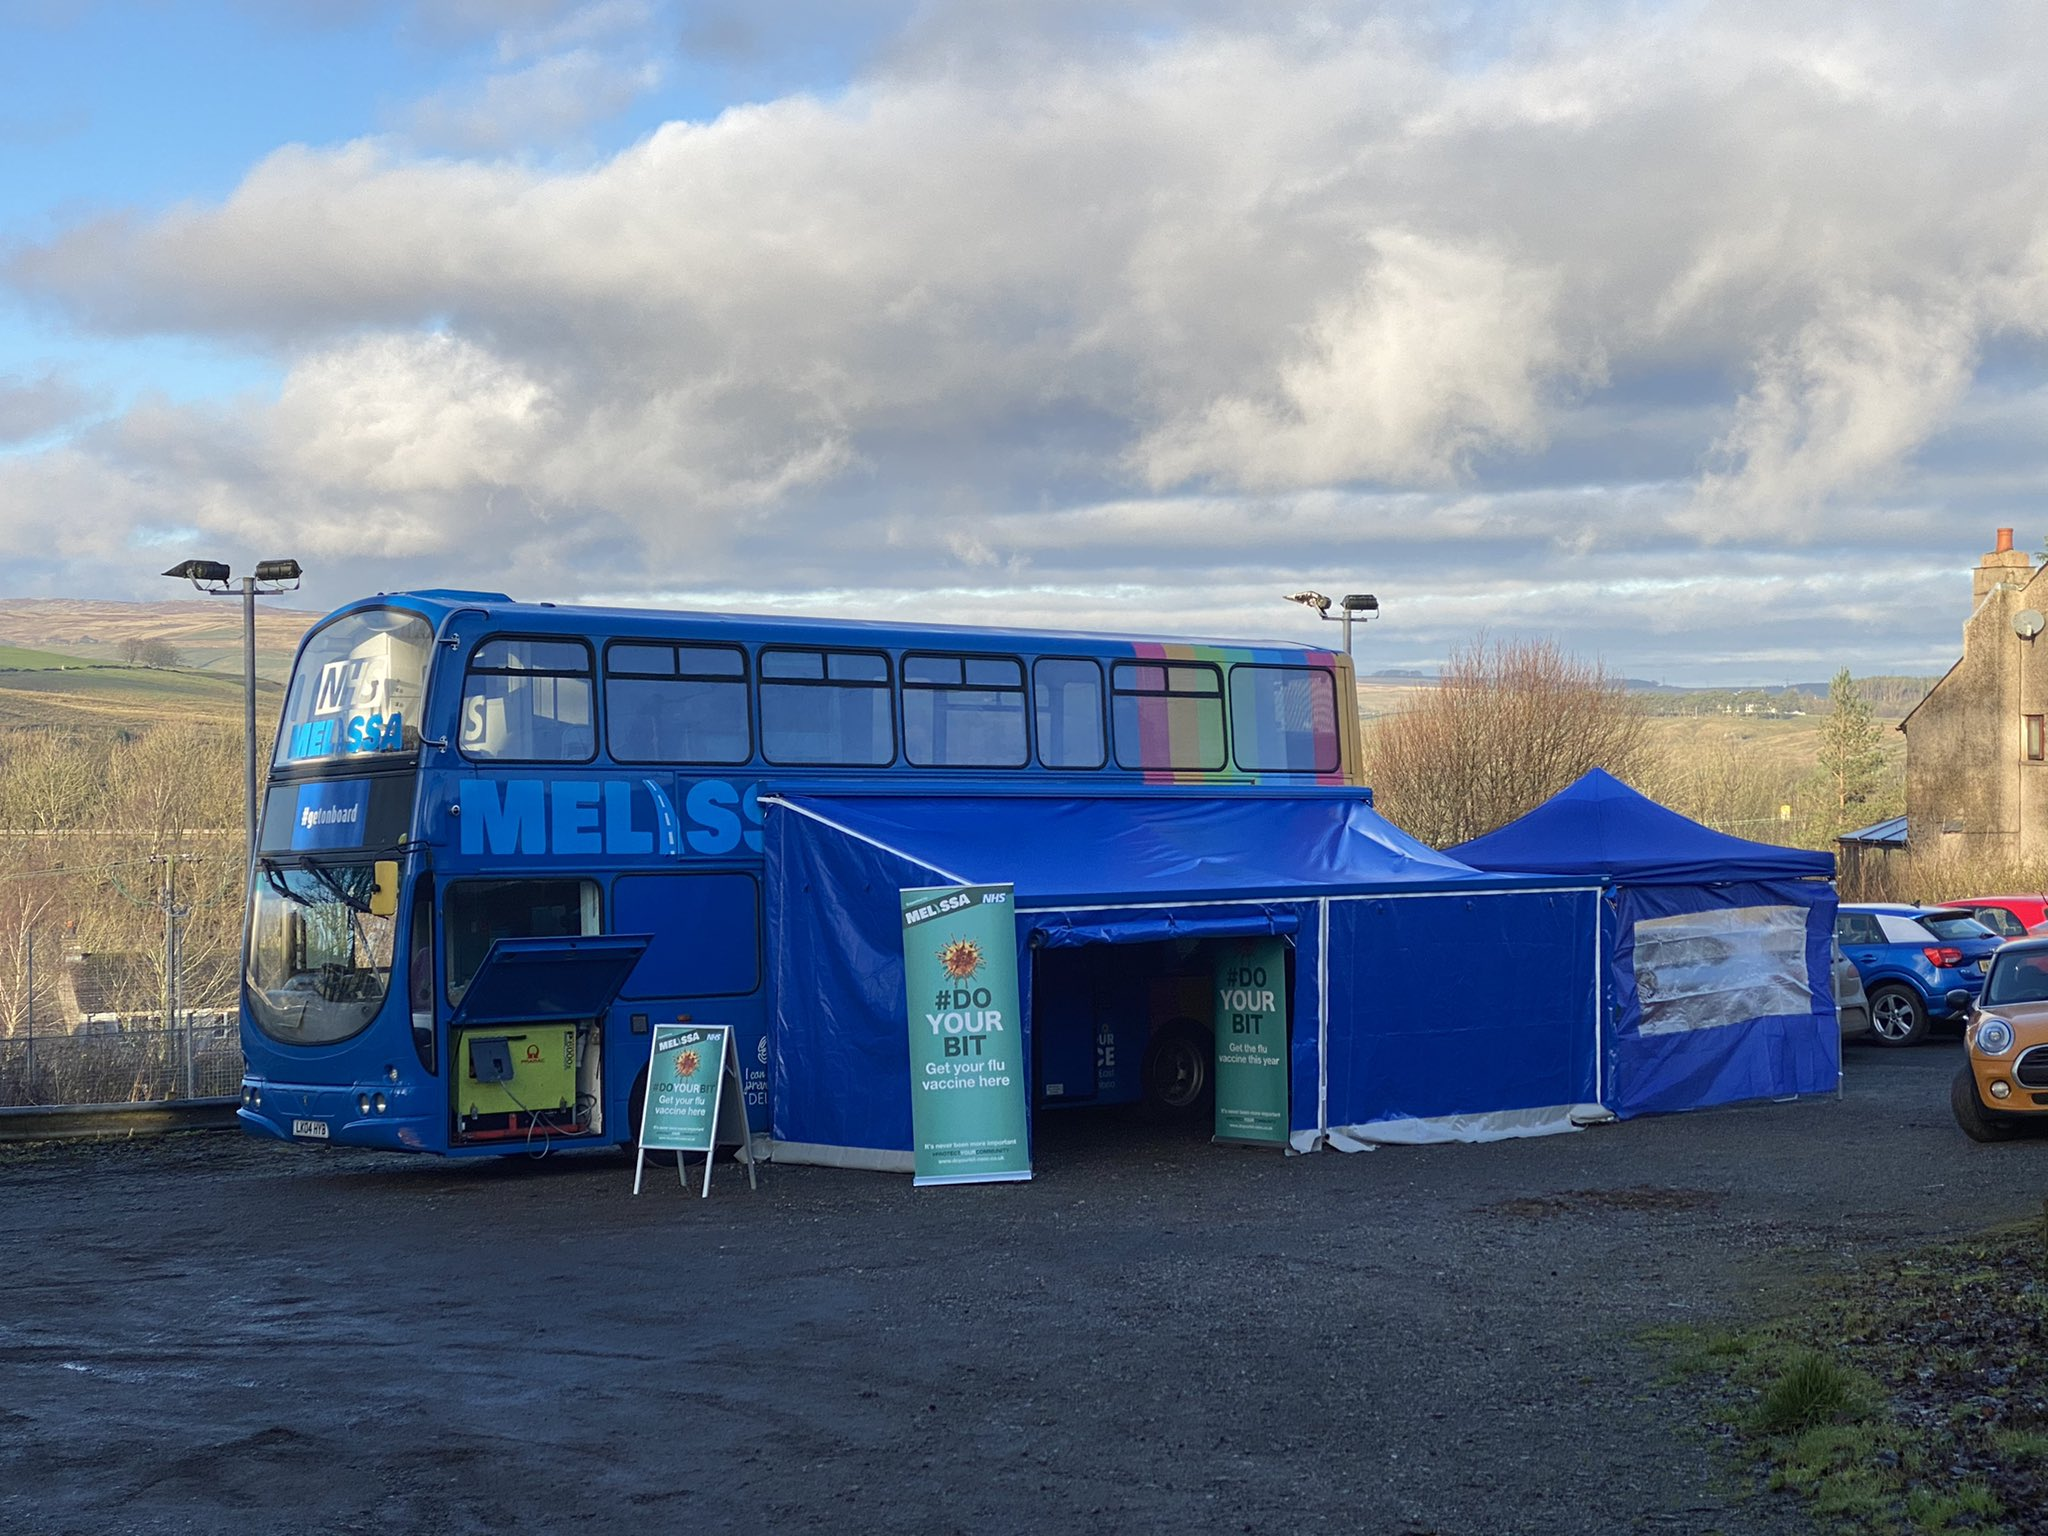 NHS 'MELISSA' bus visits Cumbria to support flu clinics at Shap Medical Practice